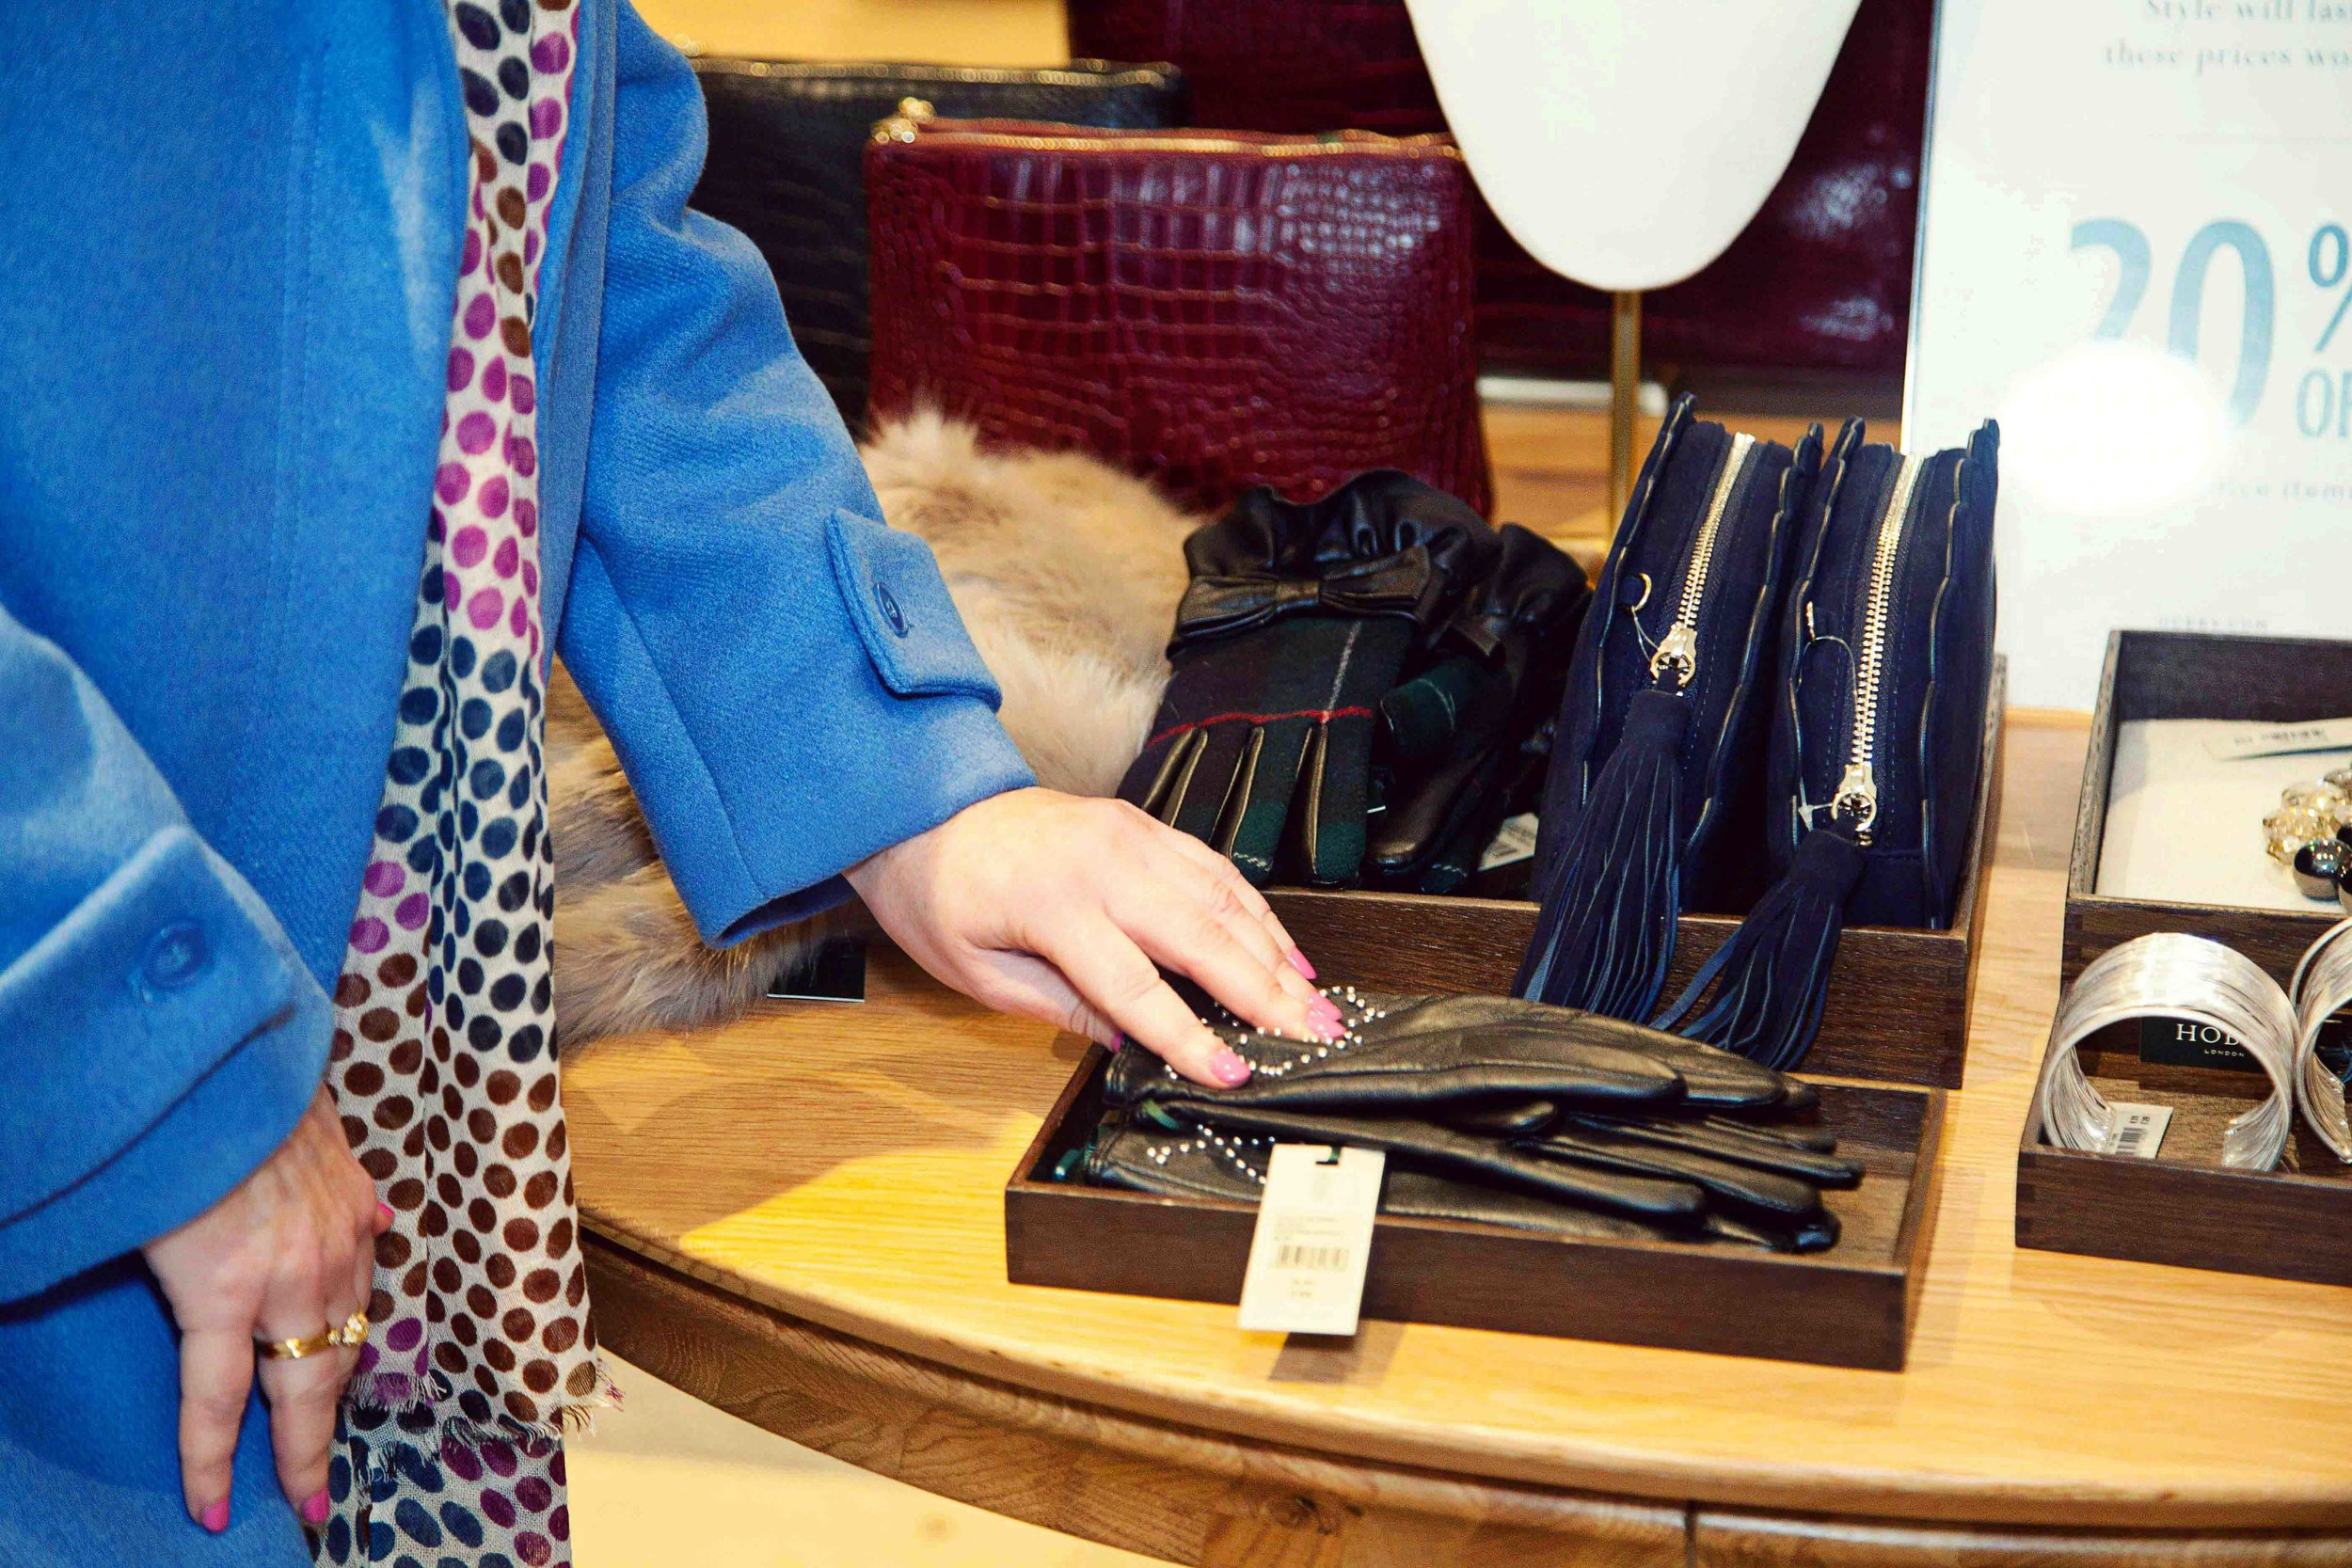 Express Shop - This is ideal if you are looking for something in particular, like a great fitting pair of jeans or accessories to complete and outfit. It helps save you time and ensures you go home with the perfect purchase.£60 for 1 hour